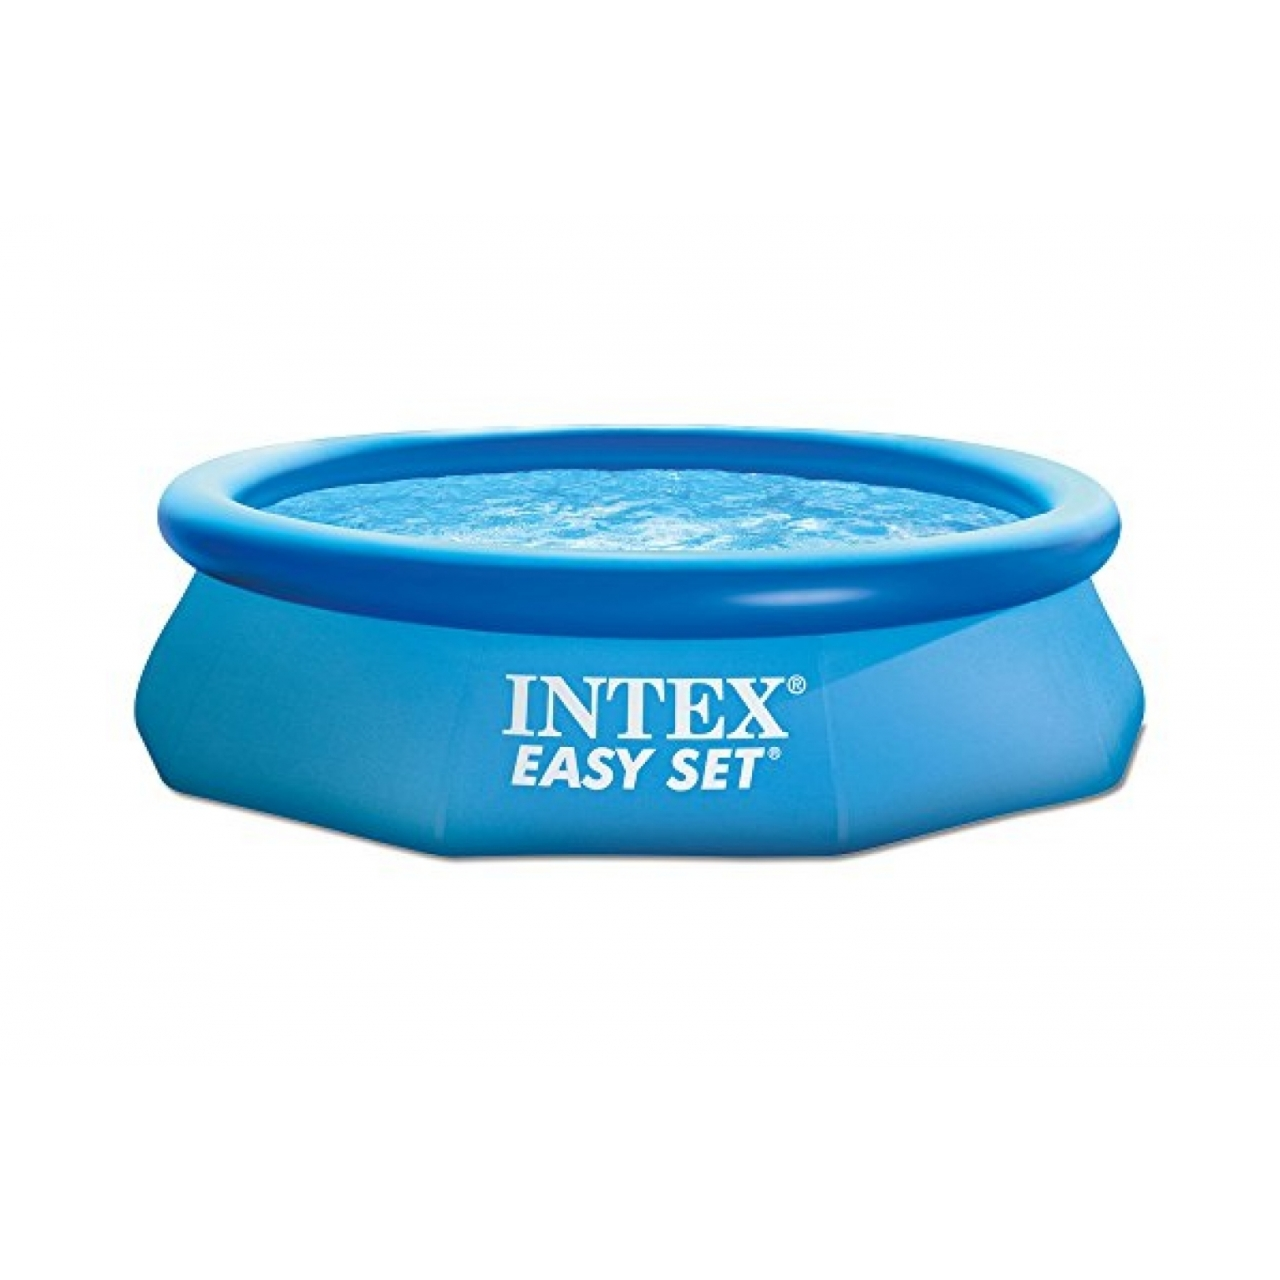 Intex Pool Filterpumpe Bedienungsanleitung Intex Easy Set Pool Test Klartest De